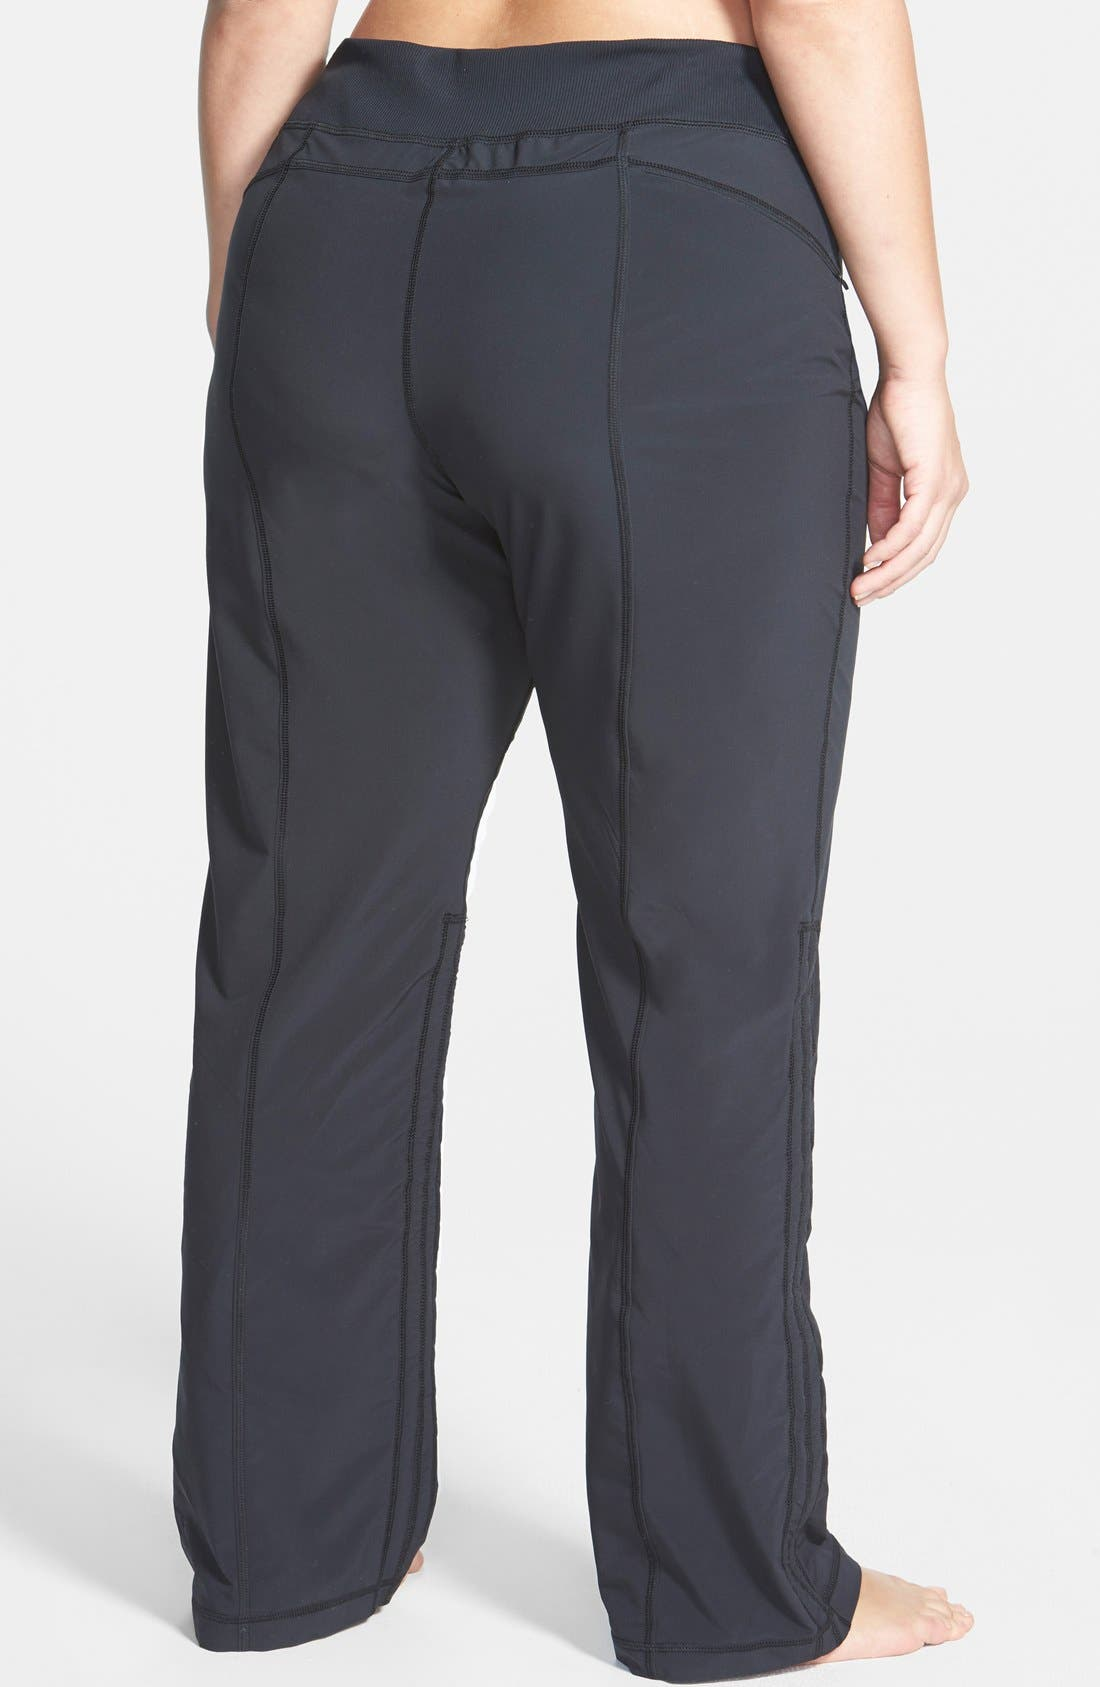 'Work It' Pants,                             Alternate thumbnail 4, color,                             001